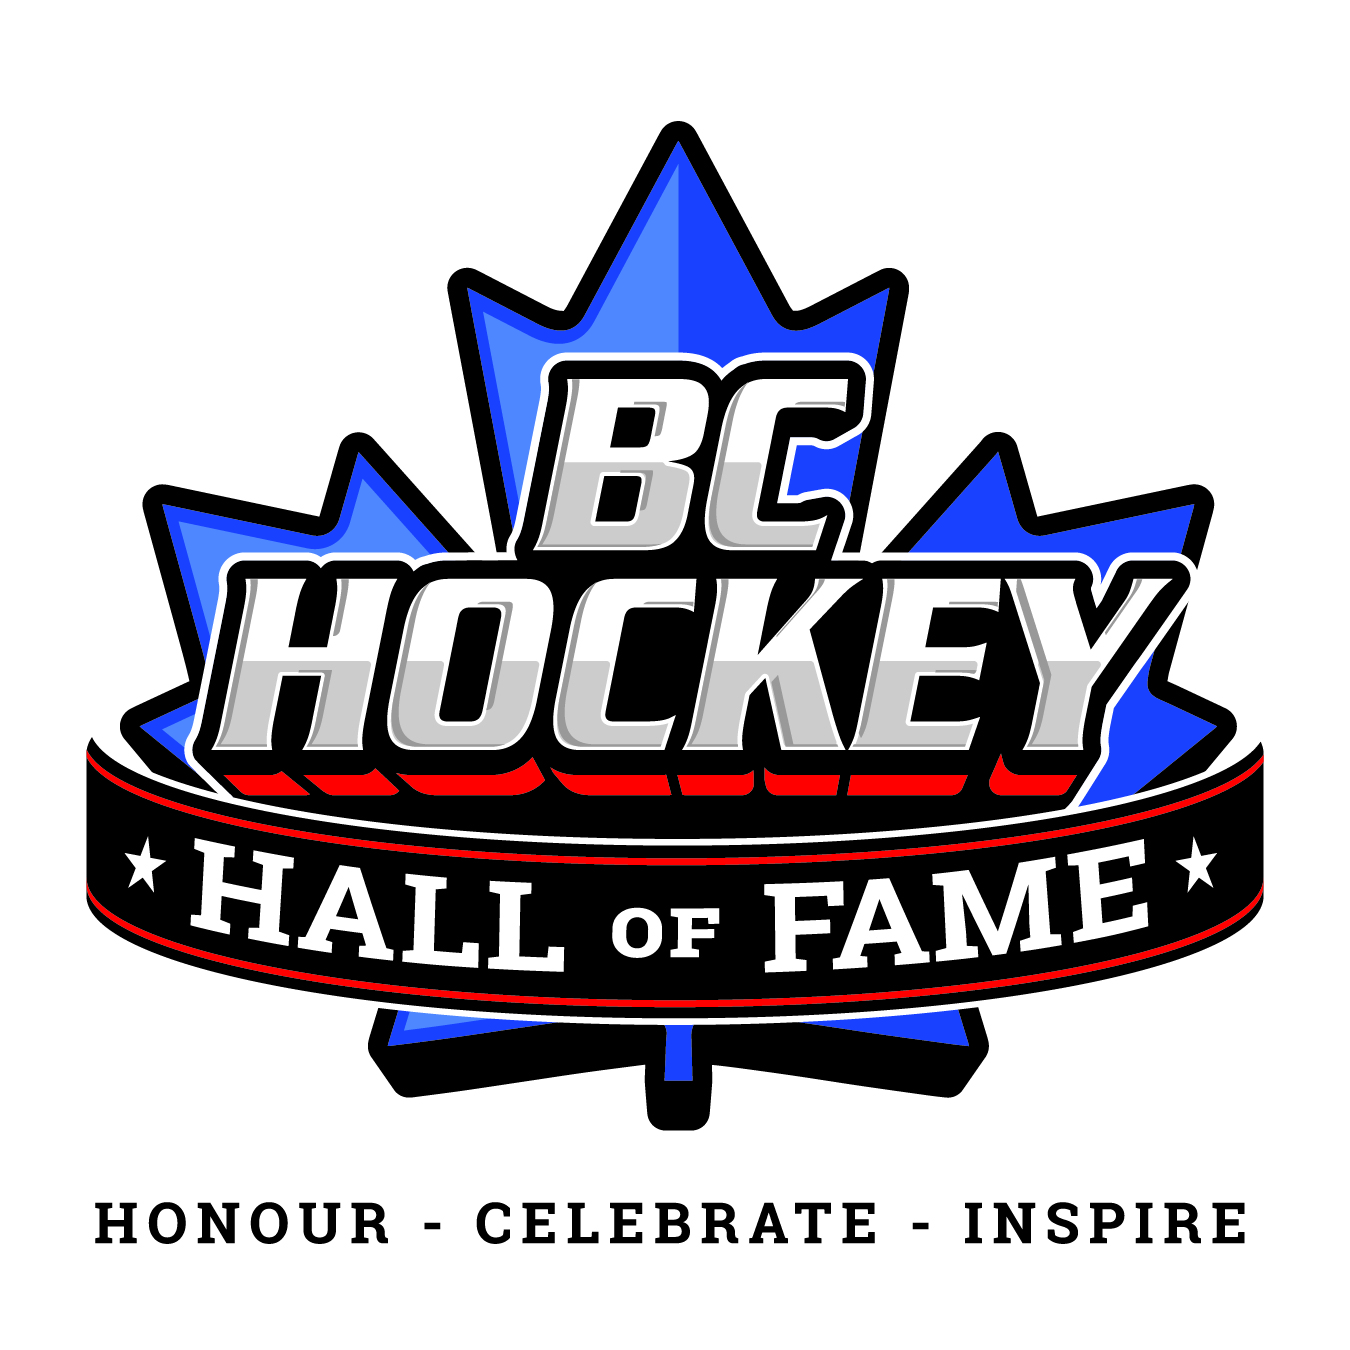 BC Hockey Hall of Fame